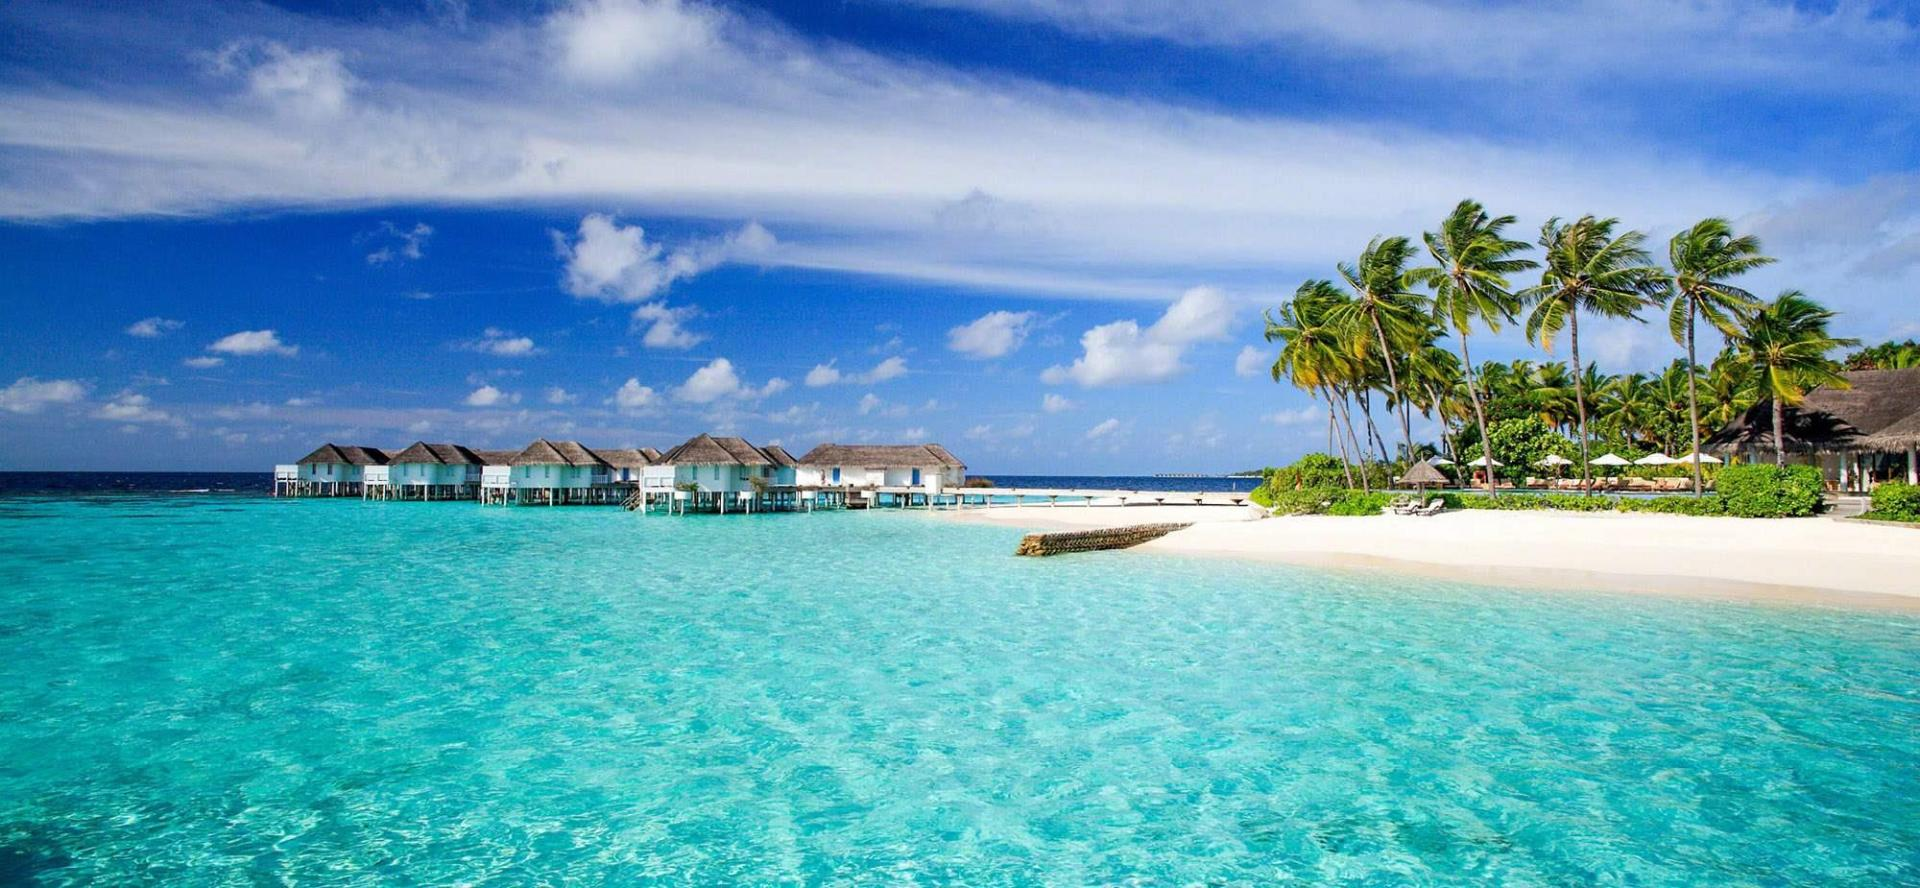 a comparison of maldives and australia The maldives, officially the republic of maldives, is a south asian country, located in the indian ocean, situated in the arabian sea it lies southwest of sri lanka and india.